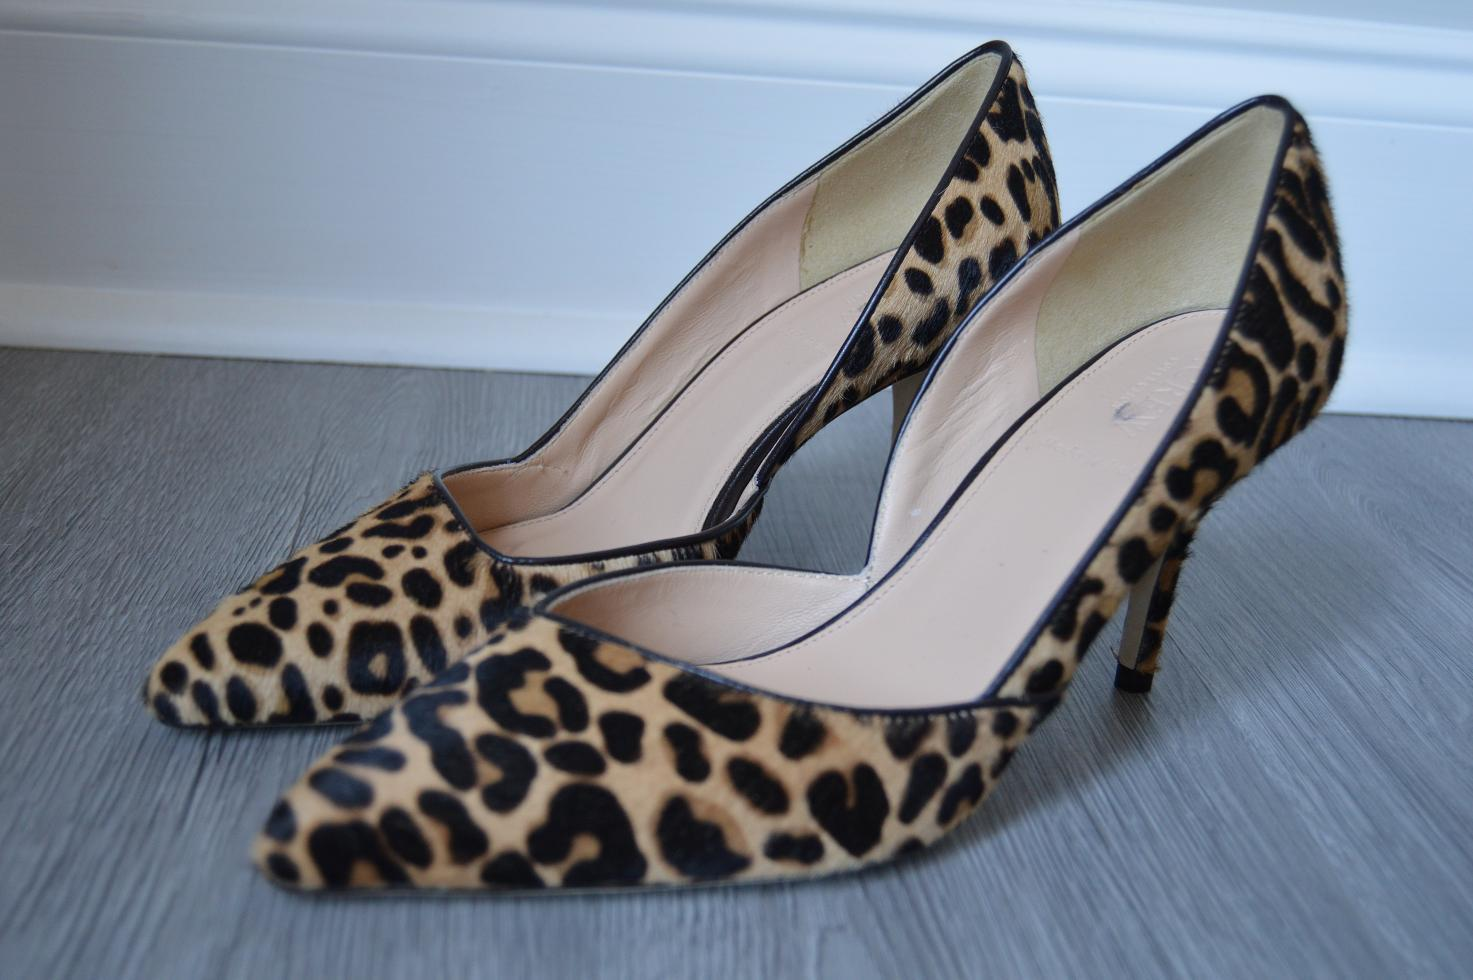 643d1c408beb JCrew  378 Colette d Orsay Pumps Leopard Calf Hair f5532 Walnut Brown Sz 7  NEW